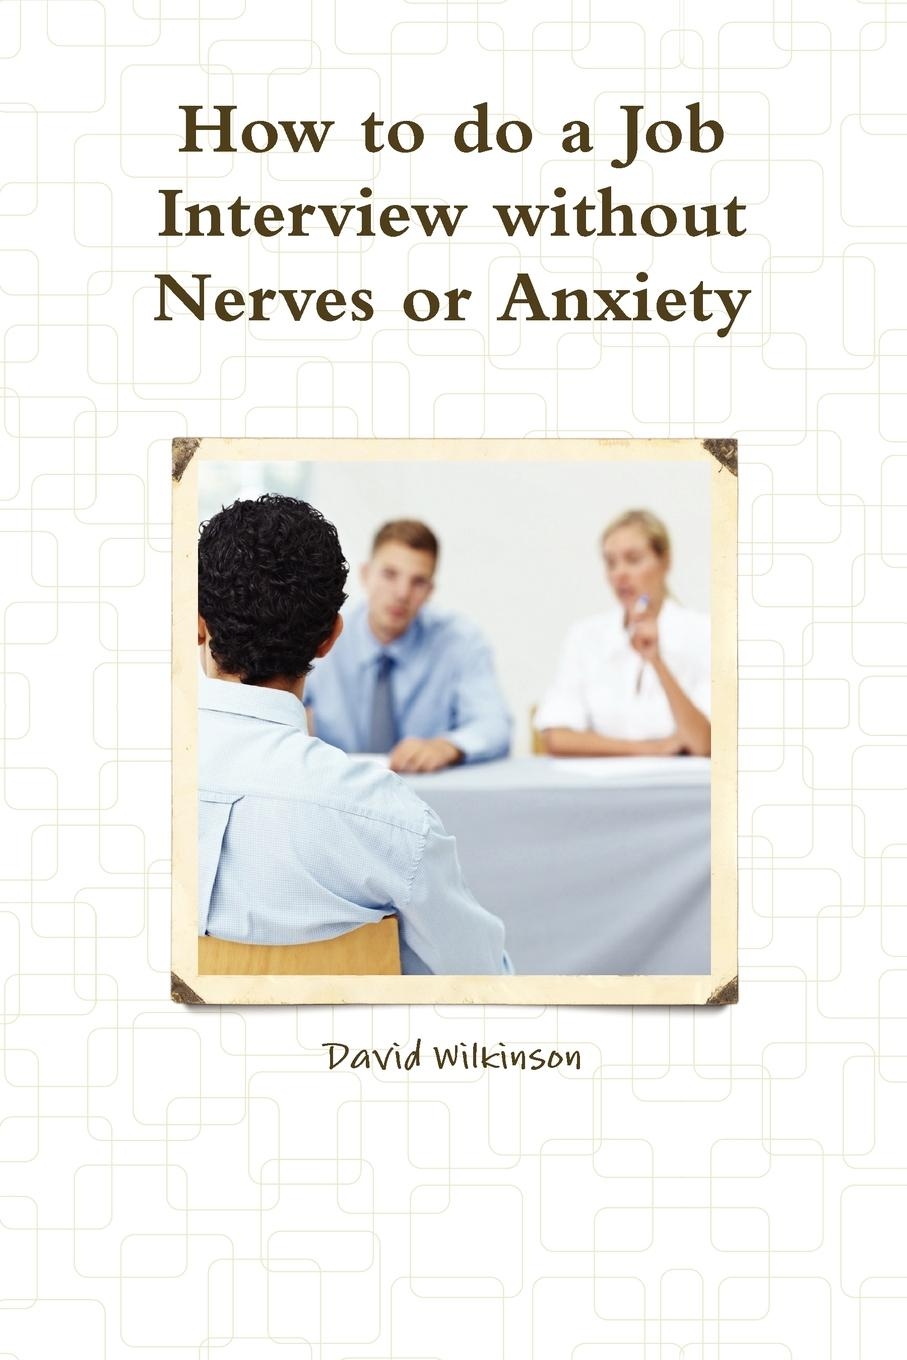 David Wilkinson The Fear Course Handbook of How to Do a Job Interview Without Nerves or Anxiety jonathan berent work makes me nervous overcome anxiety and build the confidence to succeed